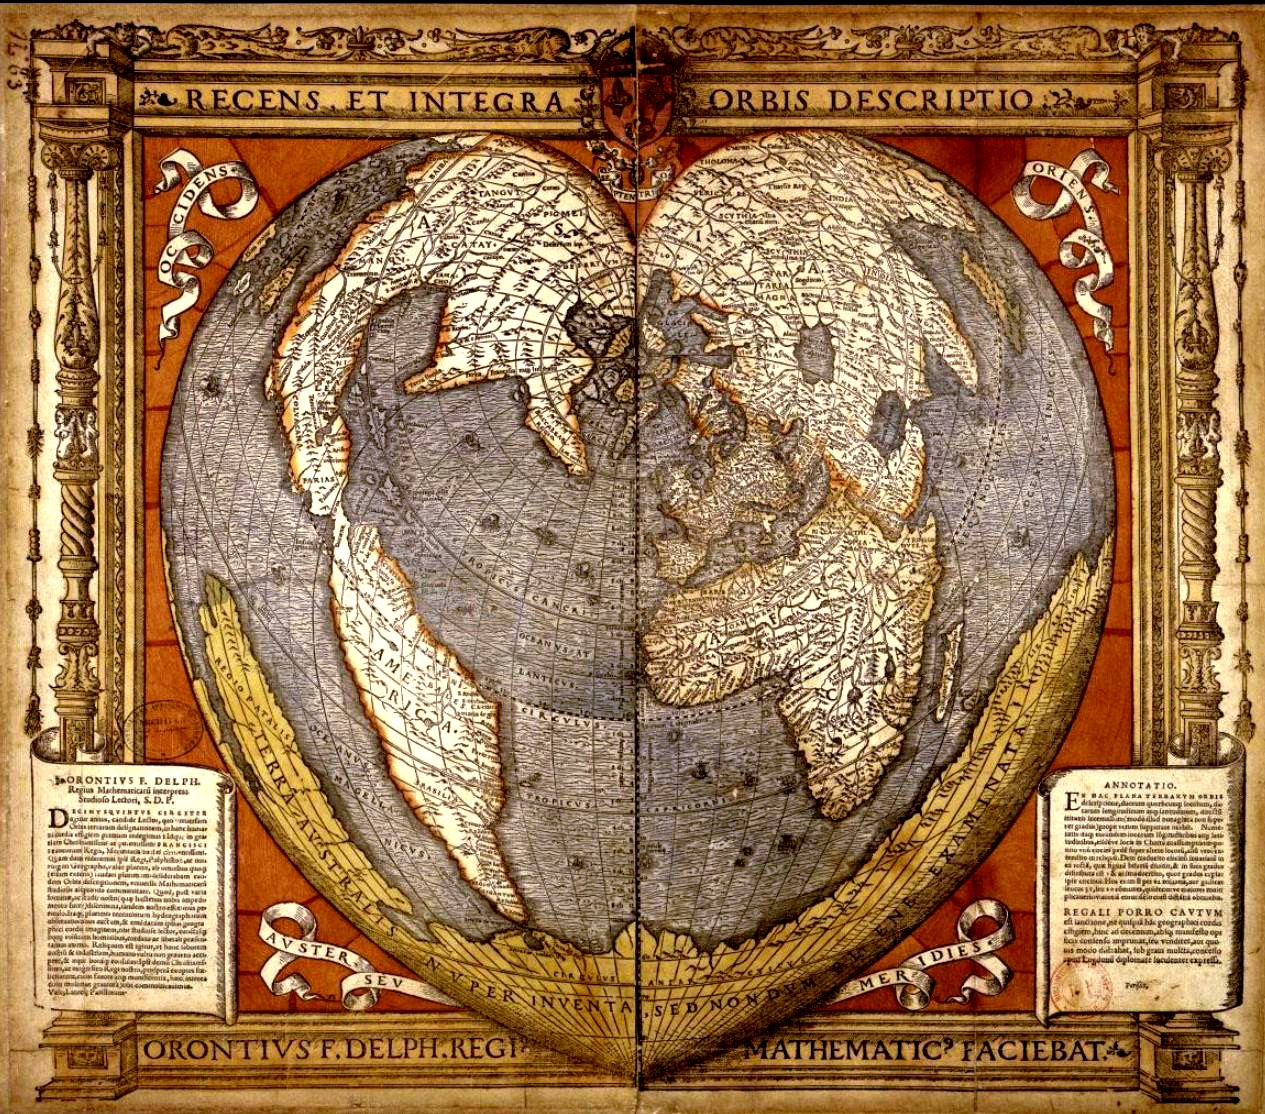 An antique world map projection with the shape of a heart. Near the center top is the North Pole, with America stretching south on the left hand side, and Europe, Africa and Asia on the right, both following the curve of the heart.